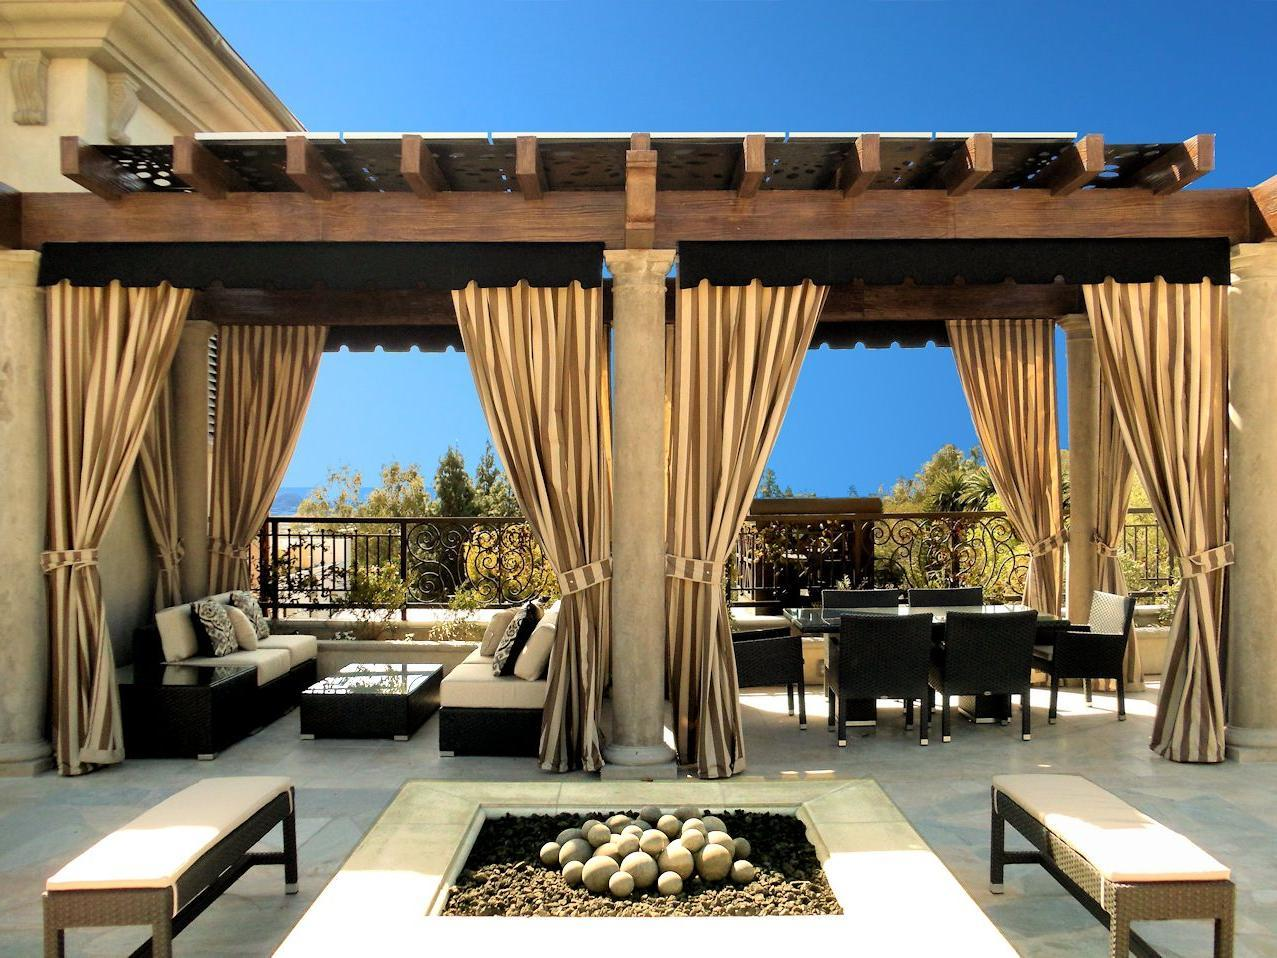 Cozy Italian Outdoor Patio with Elegant Outdoor Curtains outdoor patio curtains